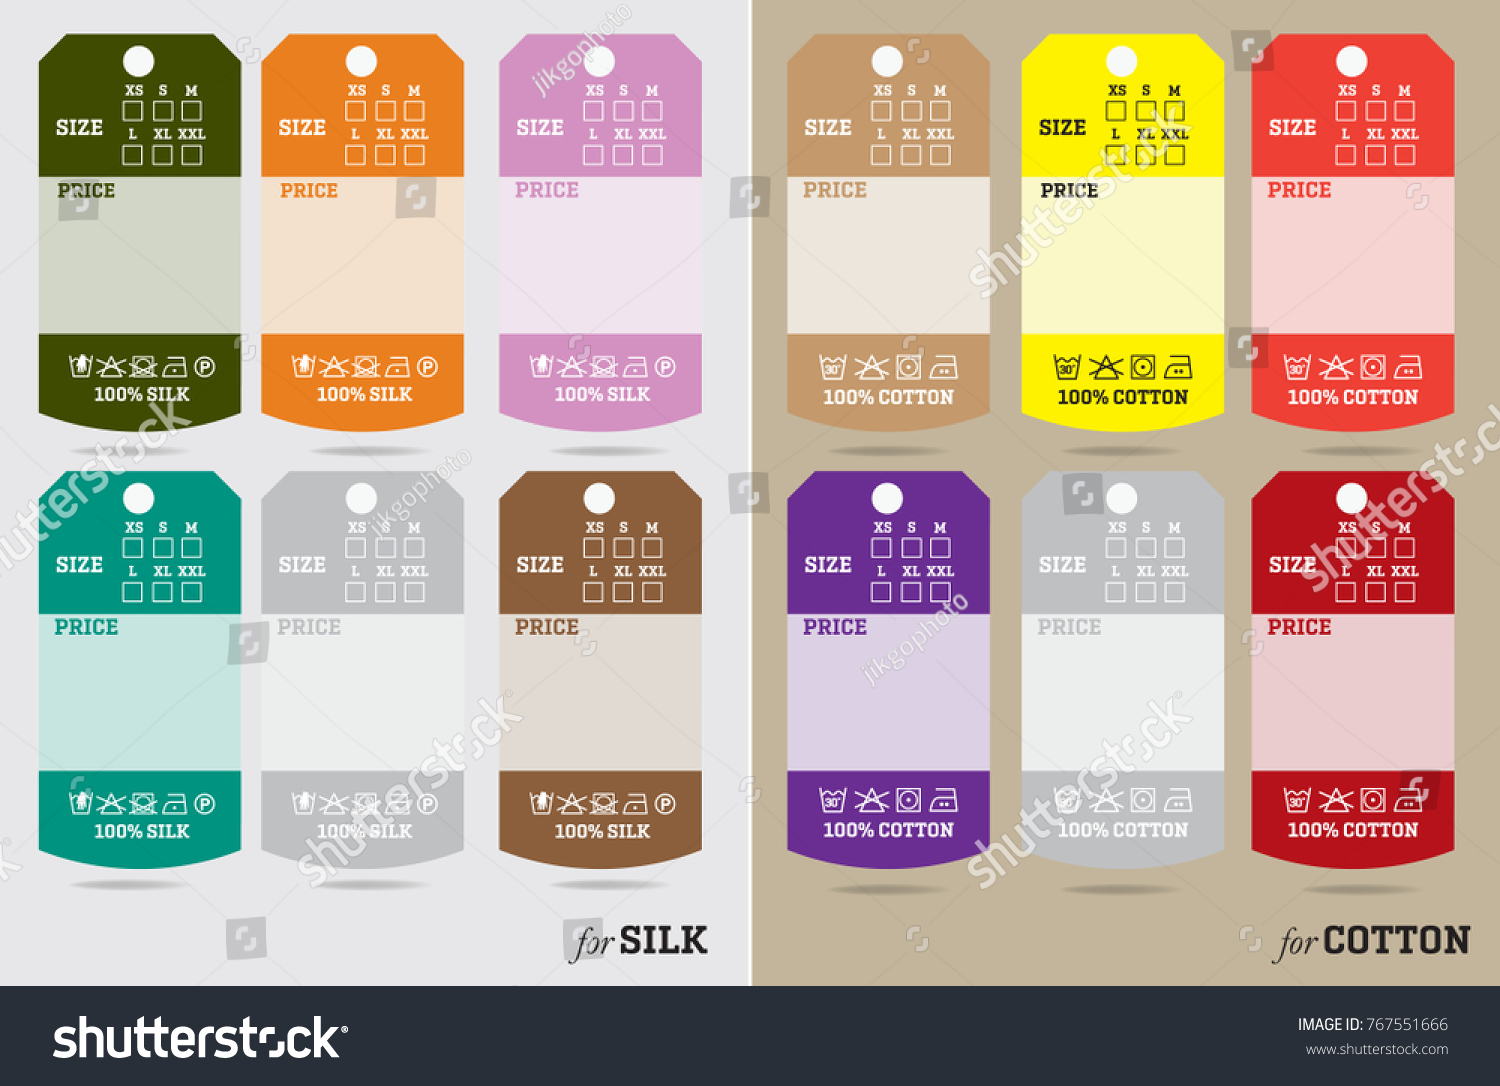 Clothing Tag Labels Sizing Universal Textile Stock Vector 767551666